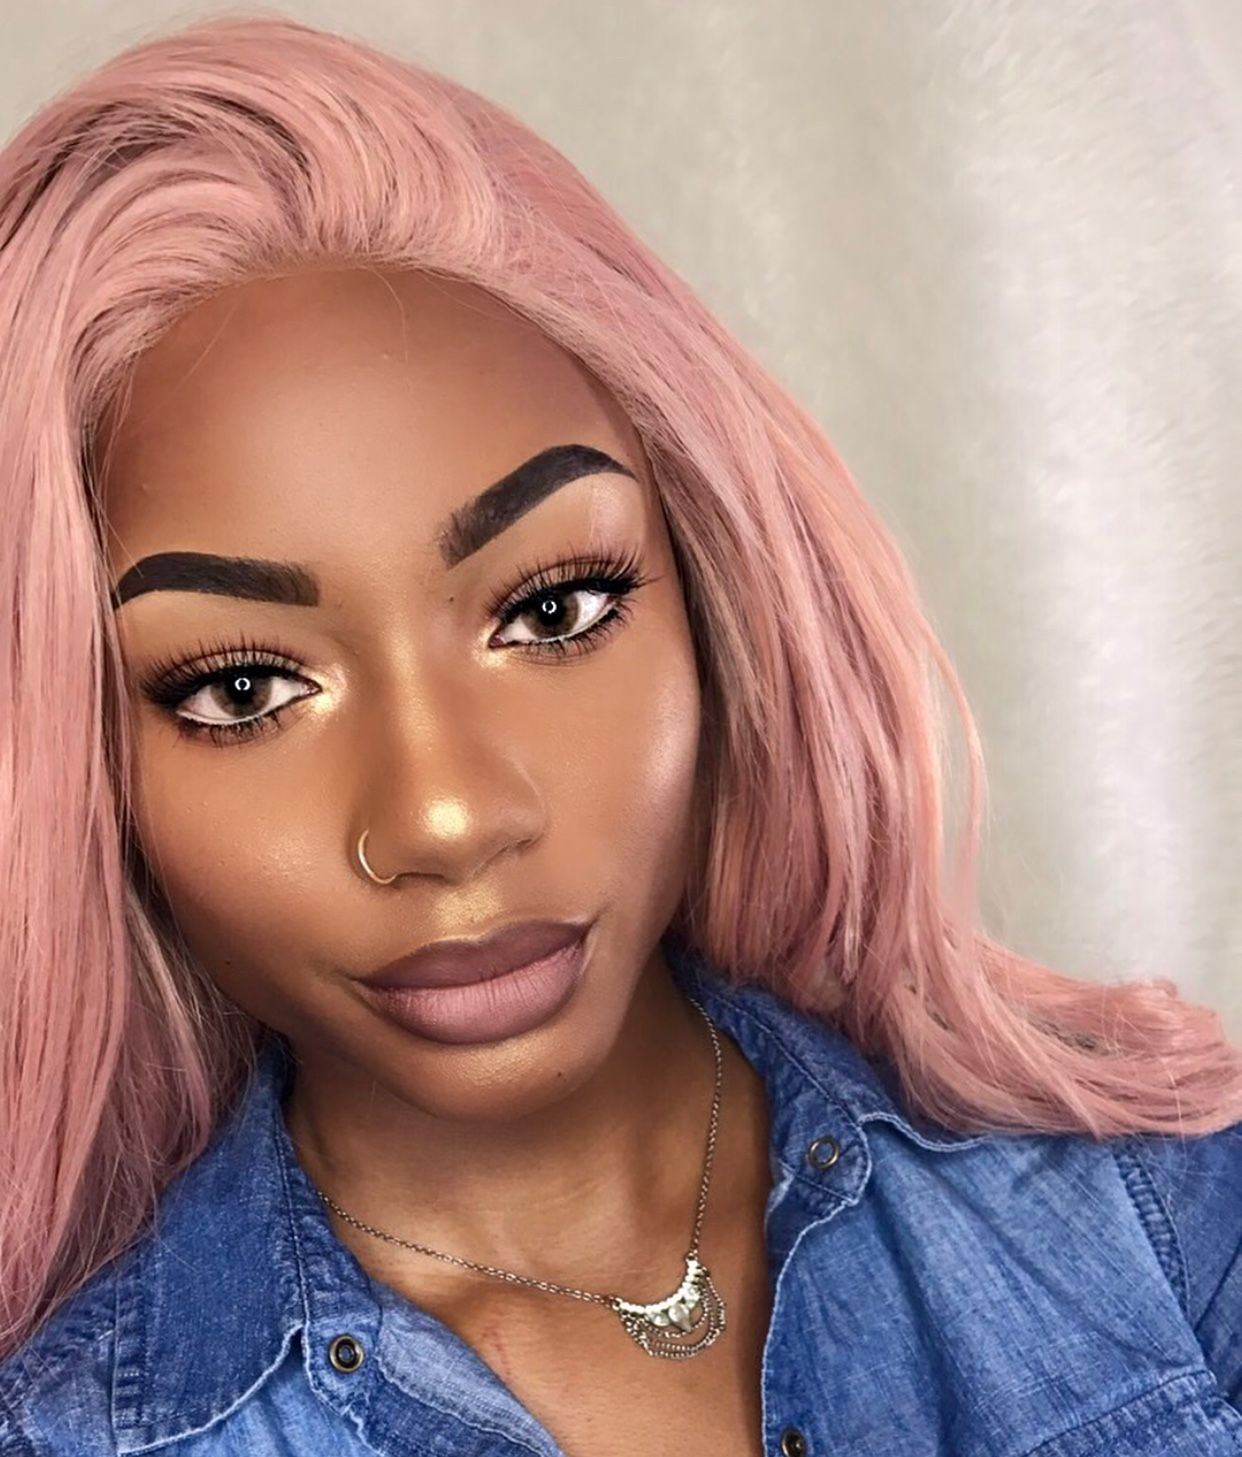 I Love Her Dusty Pink Hair On Her Skin Tone Follow Me Itslolaofficial Black Girl Pink Hair Dusty Pink Hair Rose Gold Hair